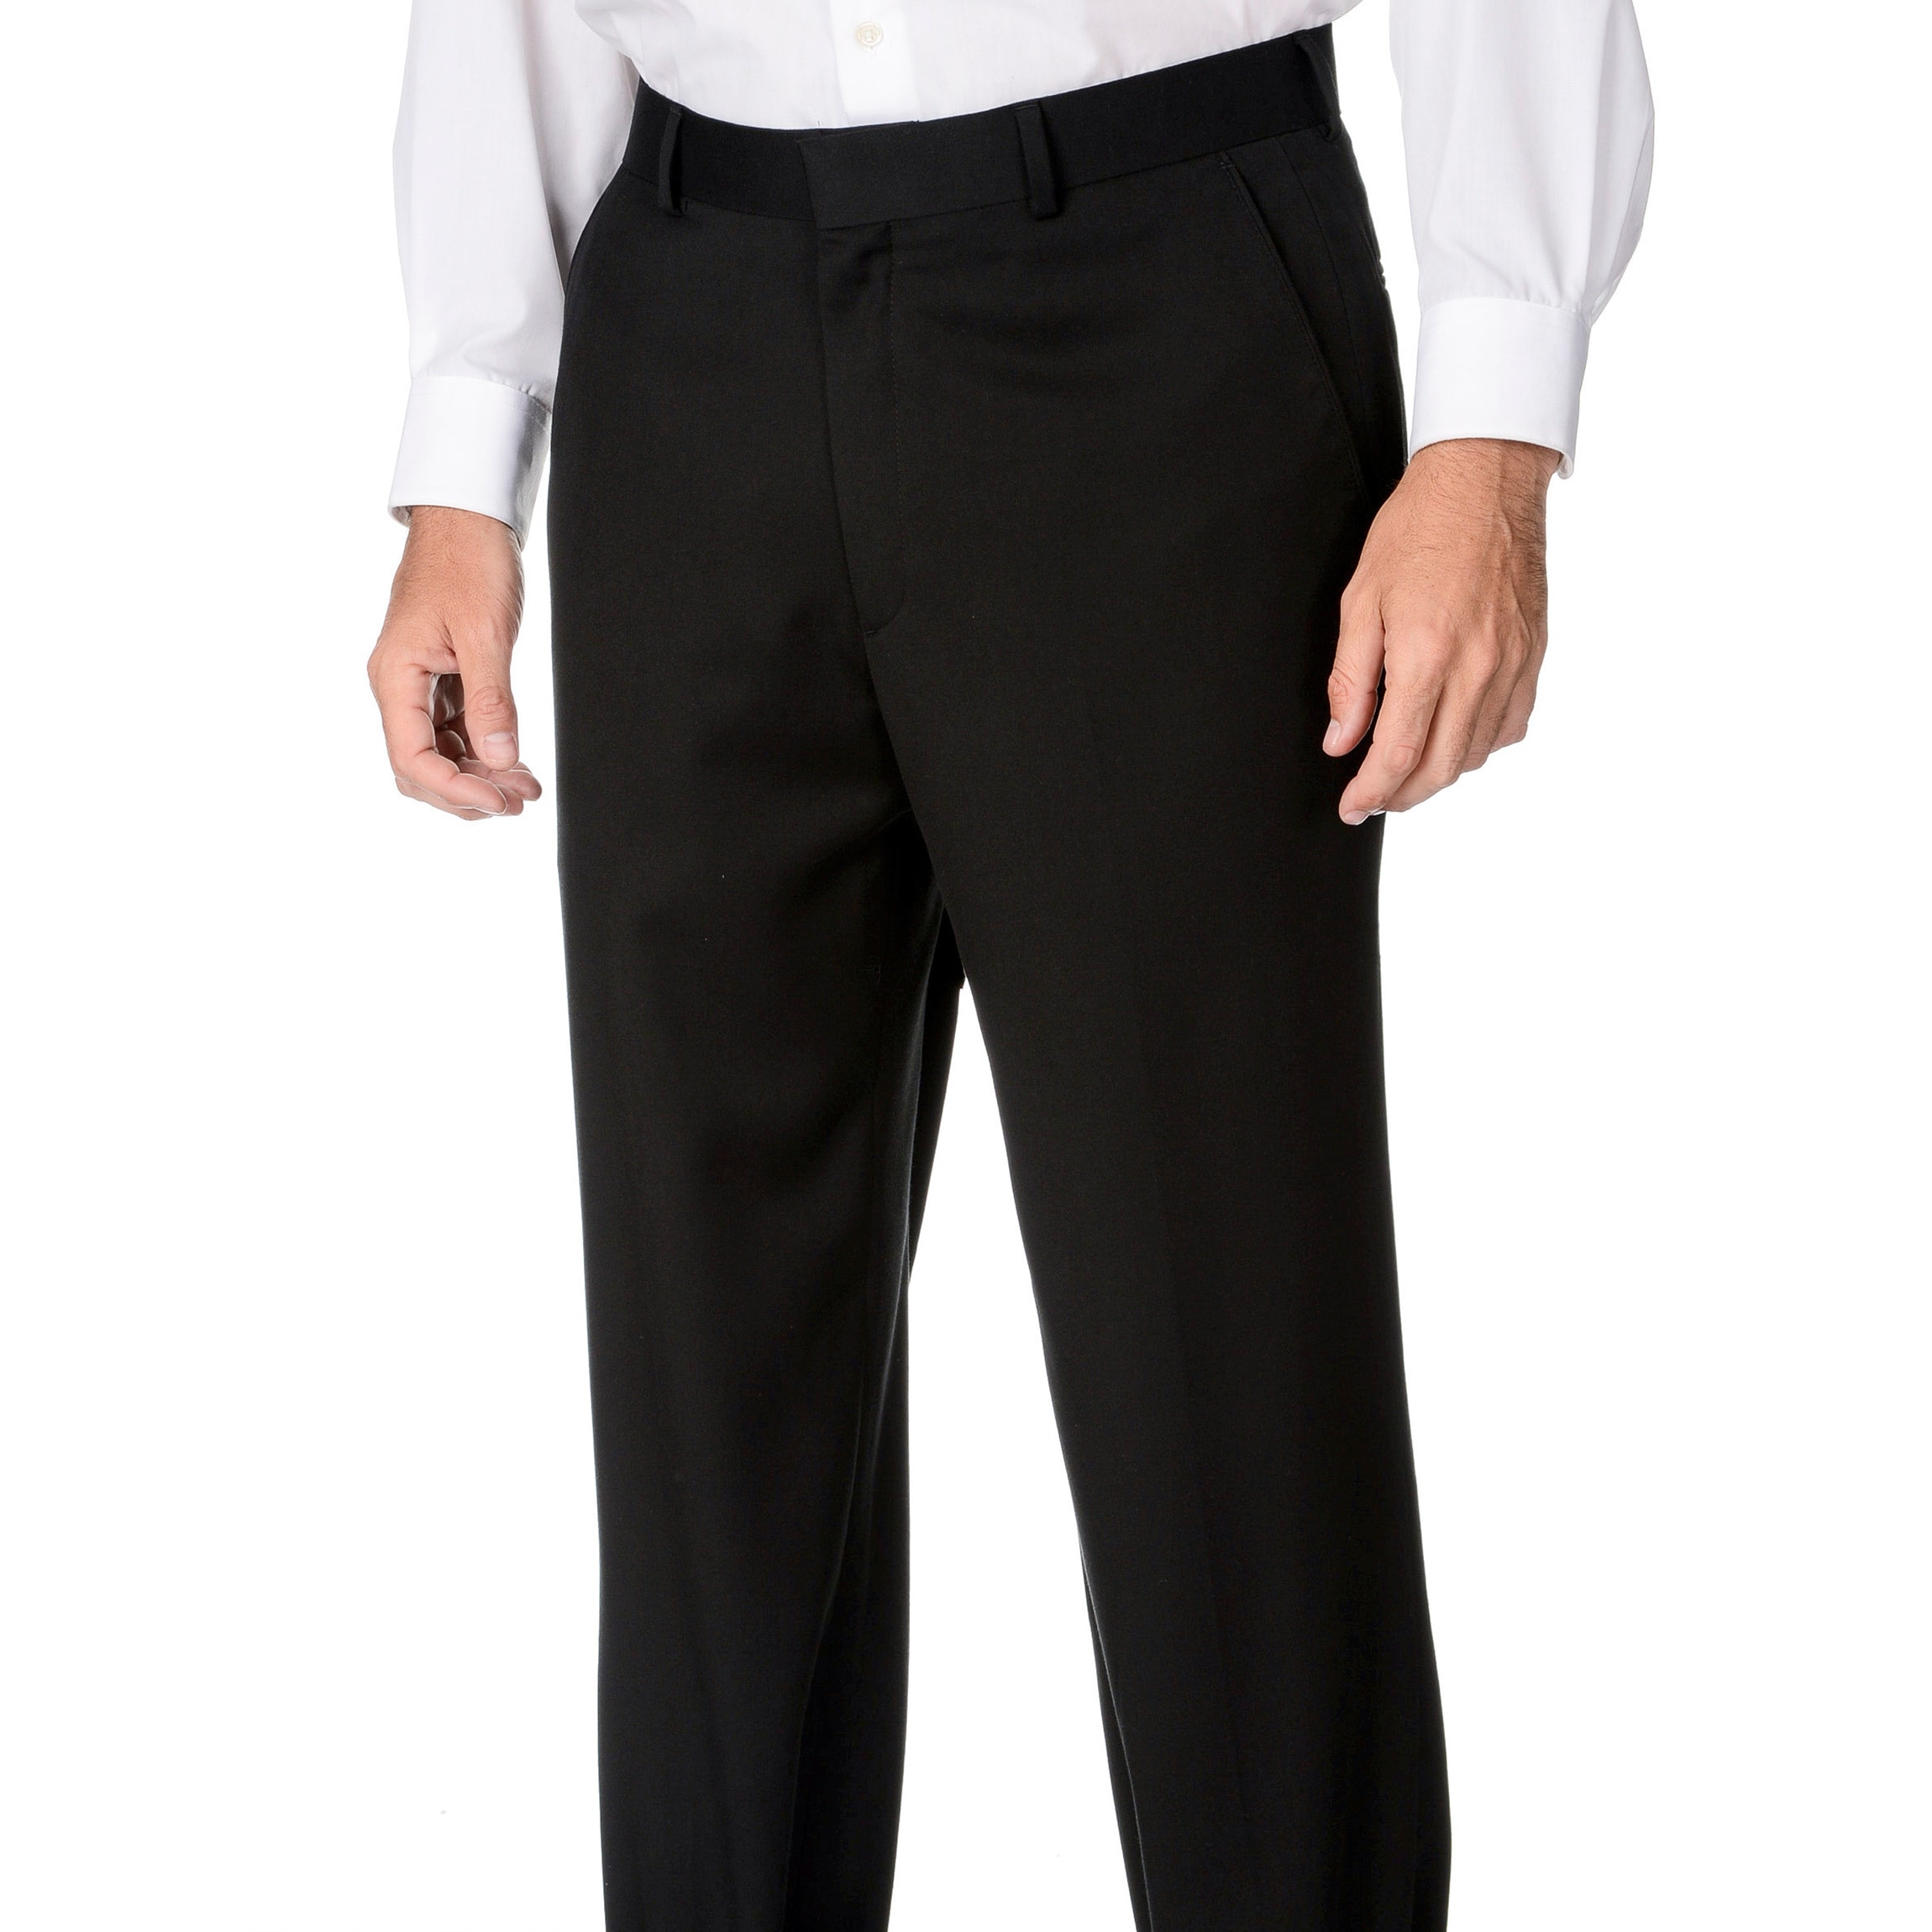 Overstock.com Marco Carelli Men's Black Flat-front Suit Separate Dress Pants at Sears.com